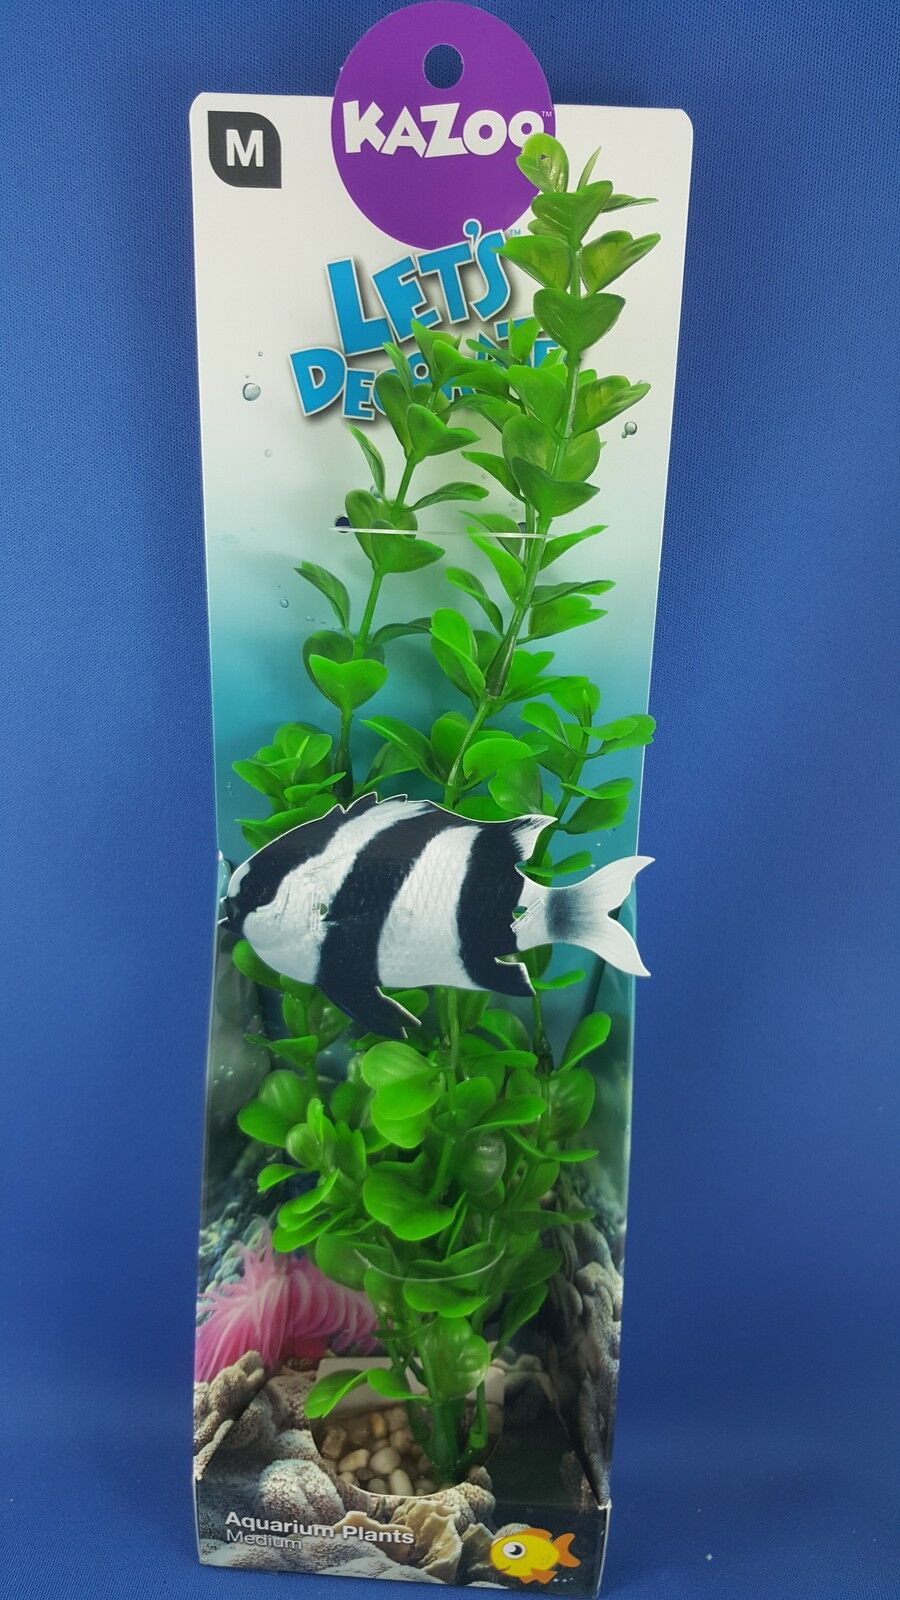 New Kazoo aquarium plant, medium with green small leaves with solid pebble base